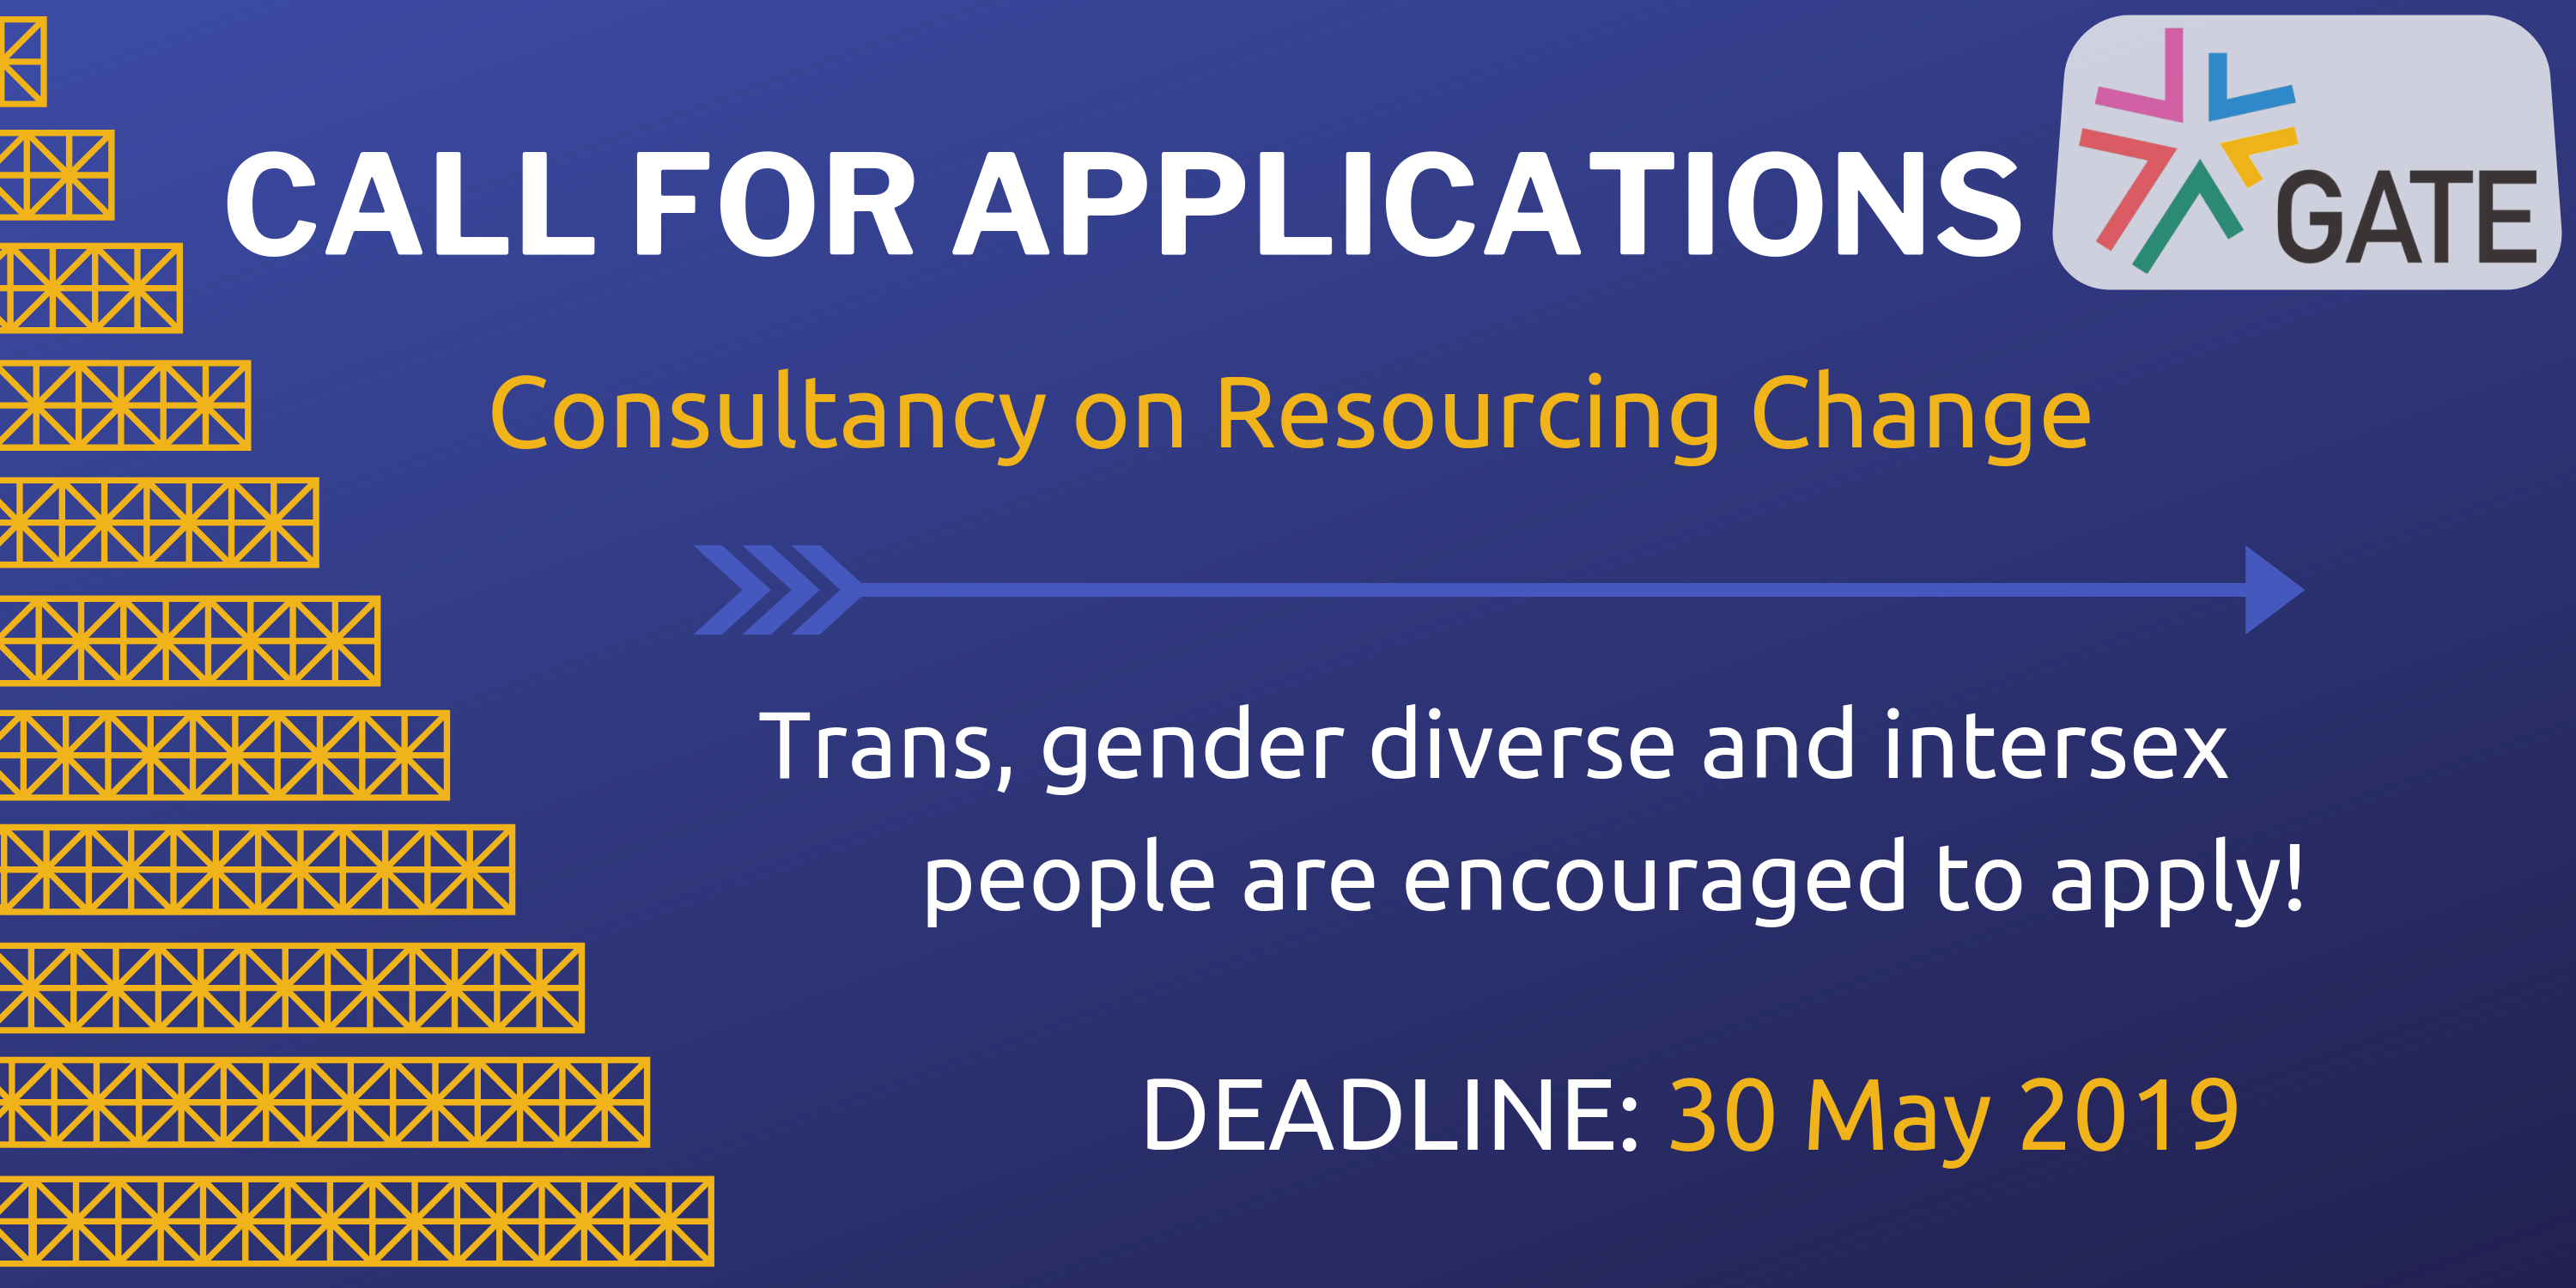 Call for applications: Consultancy on Resourcing Change